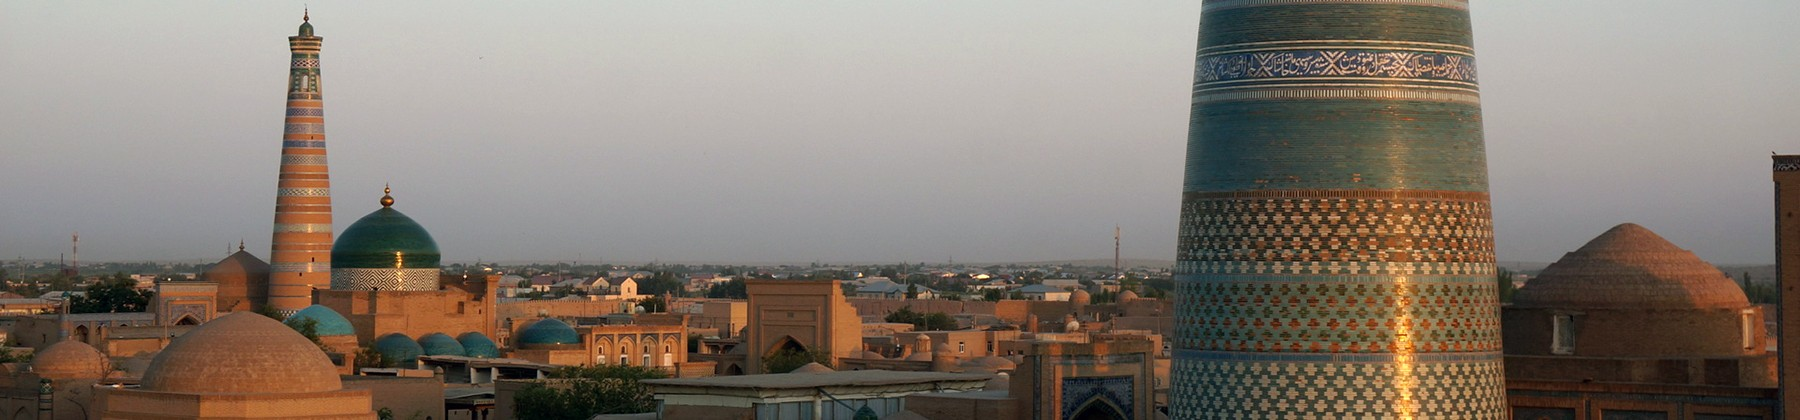 Tashkent, Khiva, Bukhara and Samarkand for 6 days - 1